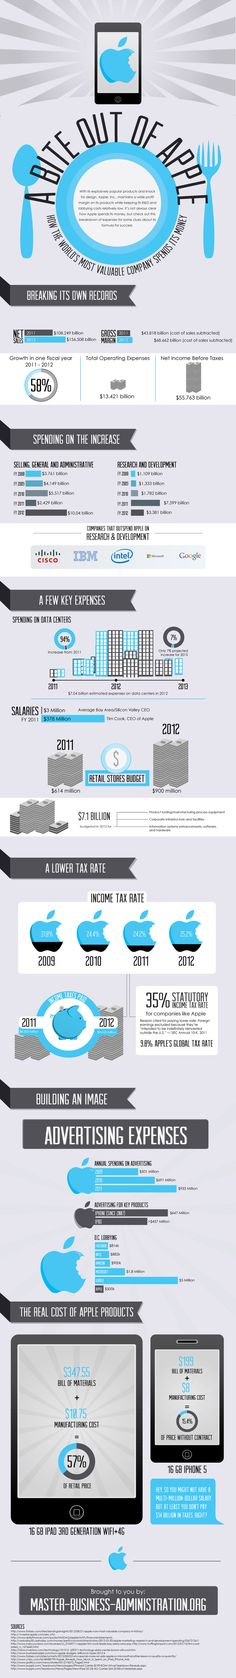 A Bite Out of #Apple : How the world's most valuable company spends its money.